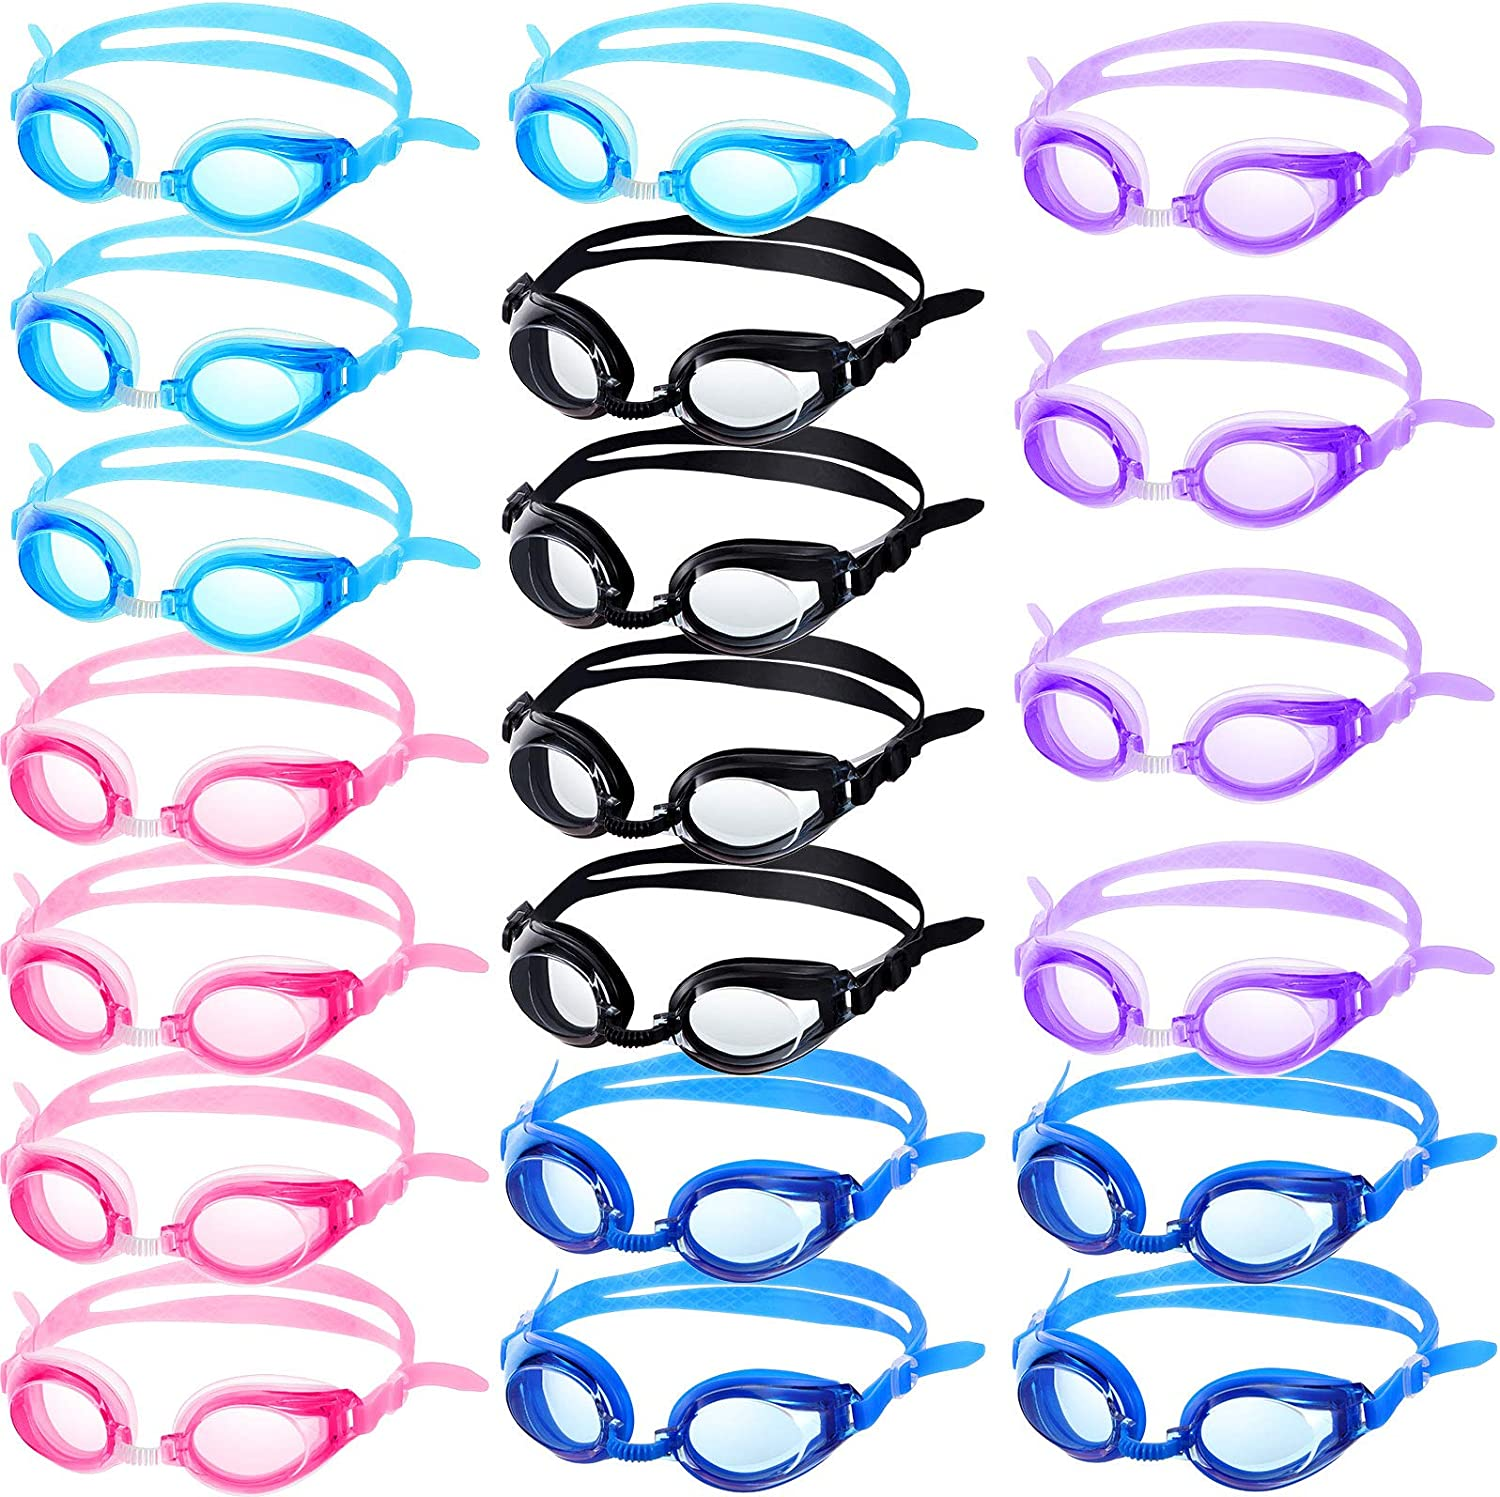 20 Pairs Kids Swimming Goggles Japan's Milwaukee Mall largest assortment Leaking No View Swim Wide